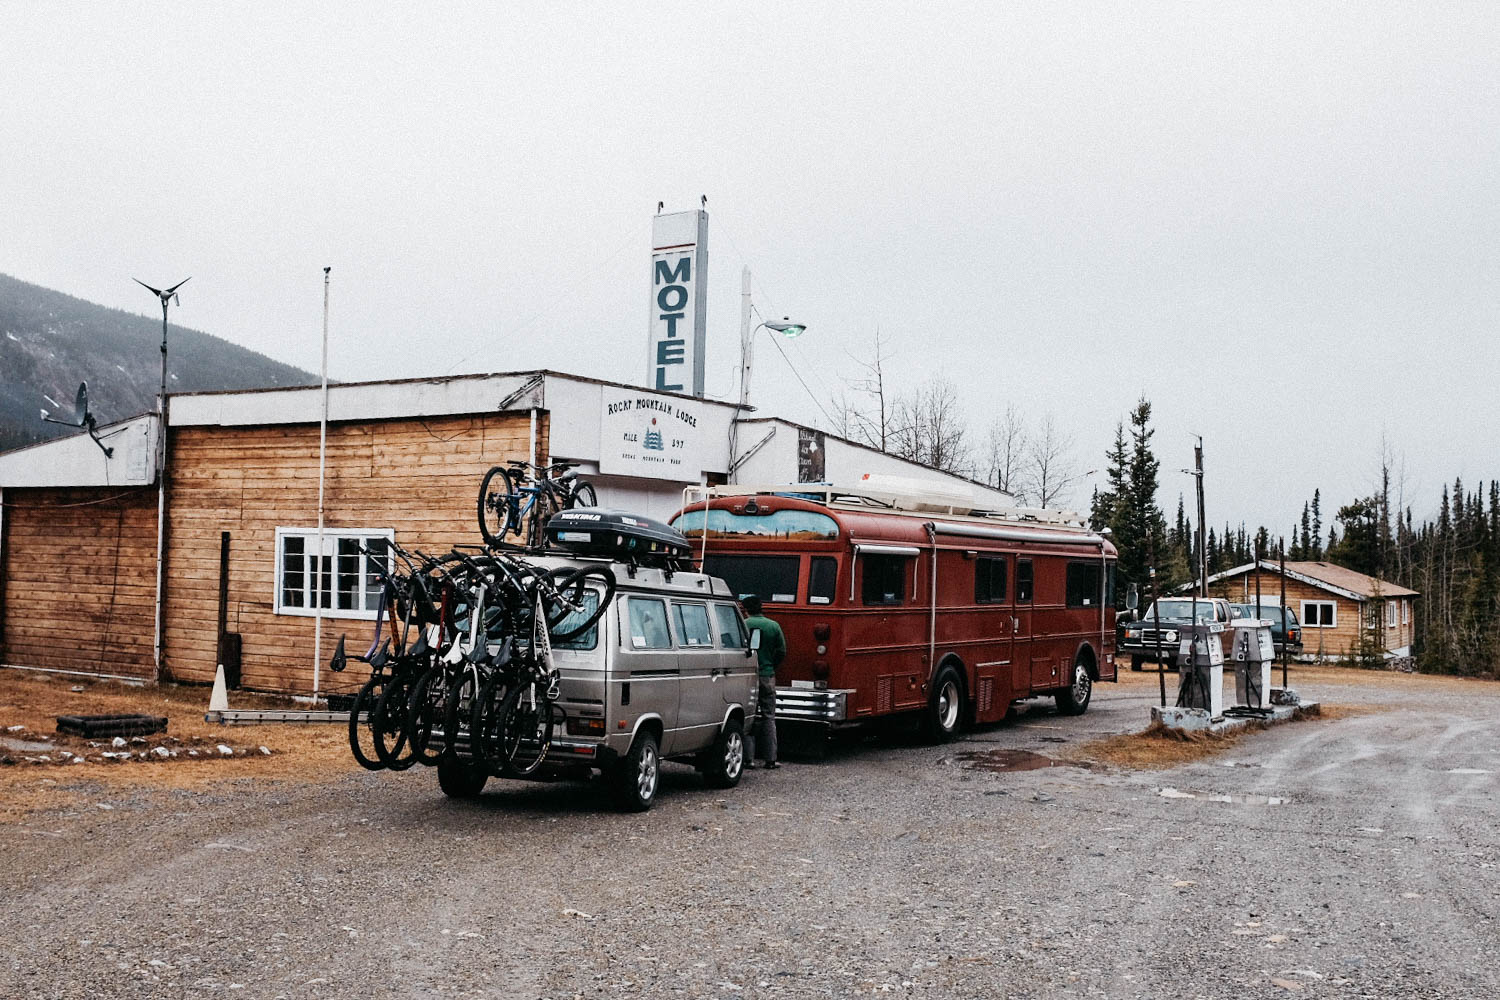 One of many similar gas stations/motels/restaurant along the Alaska Highway. The guy that lives there had grey skin. He says he spends his winters here all by himself. What a life!